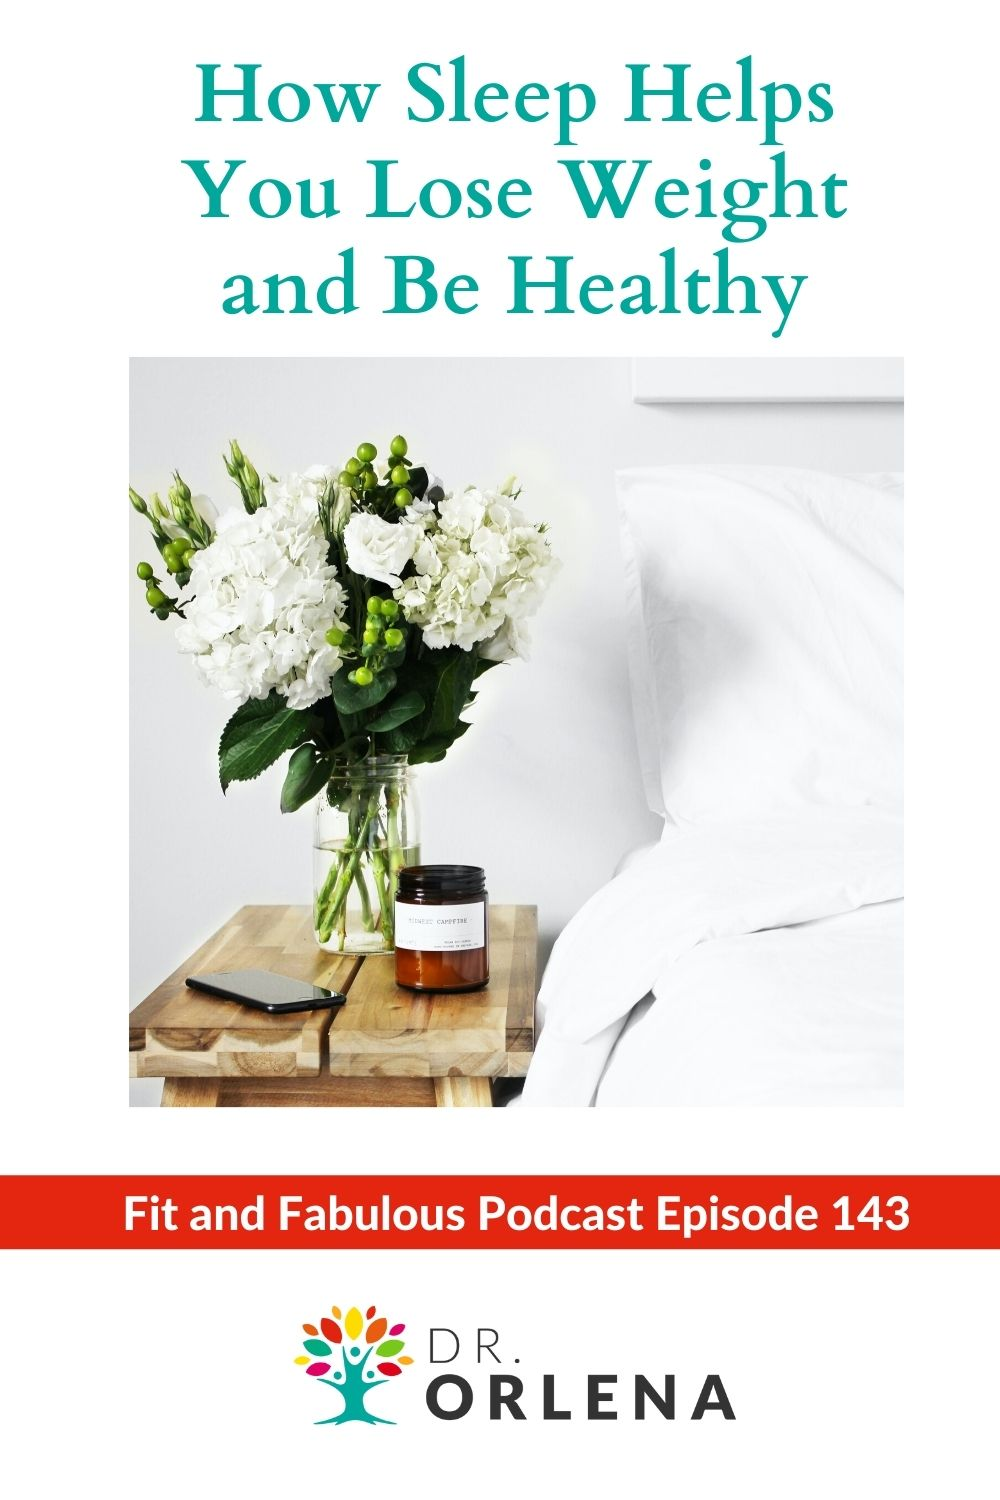 Photo of a bedside with flowers and scented candles #sleep #wellness #health